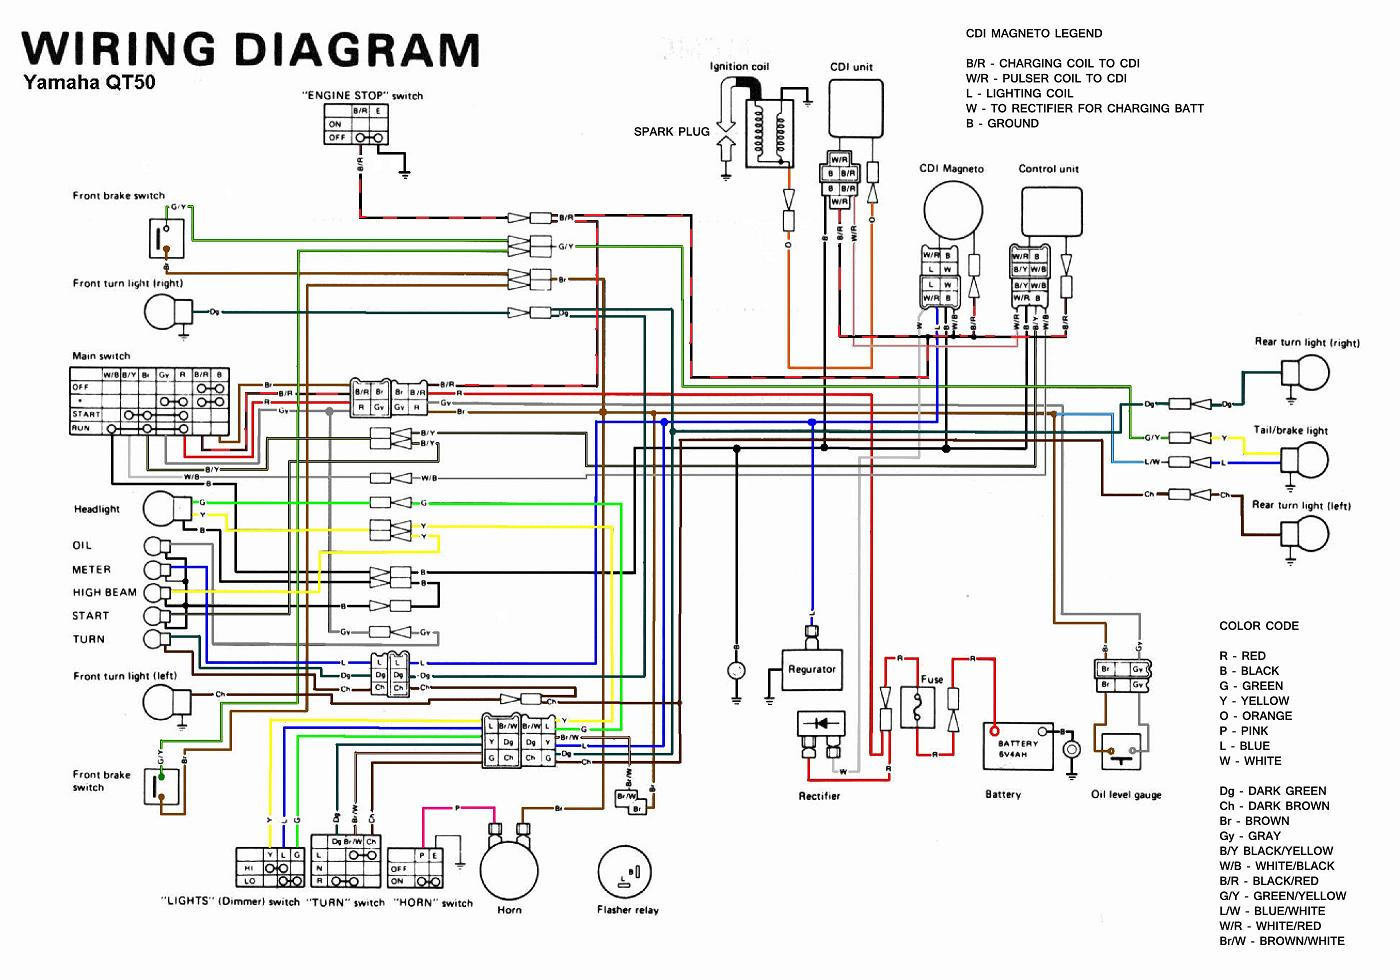 Triple electric switch wiring diagram